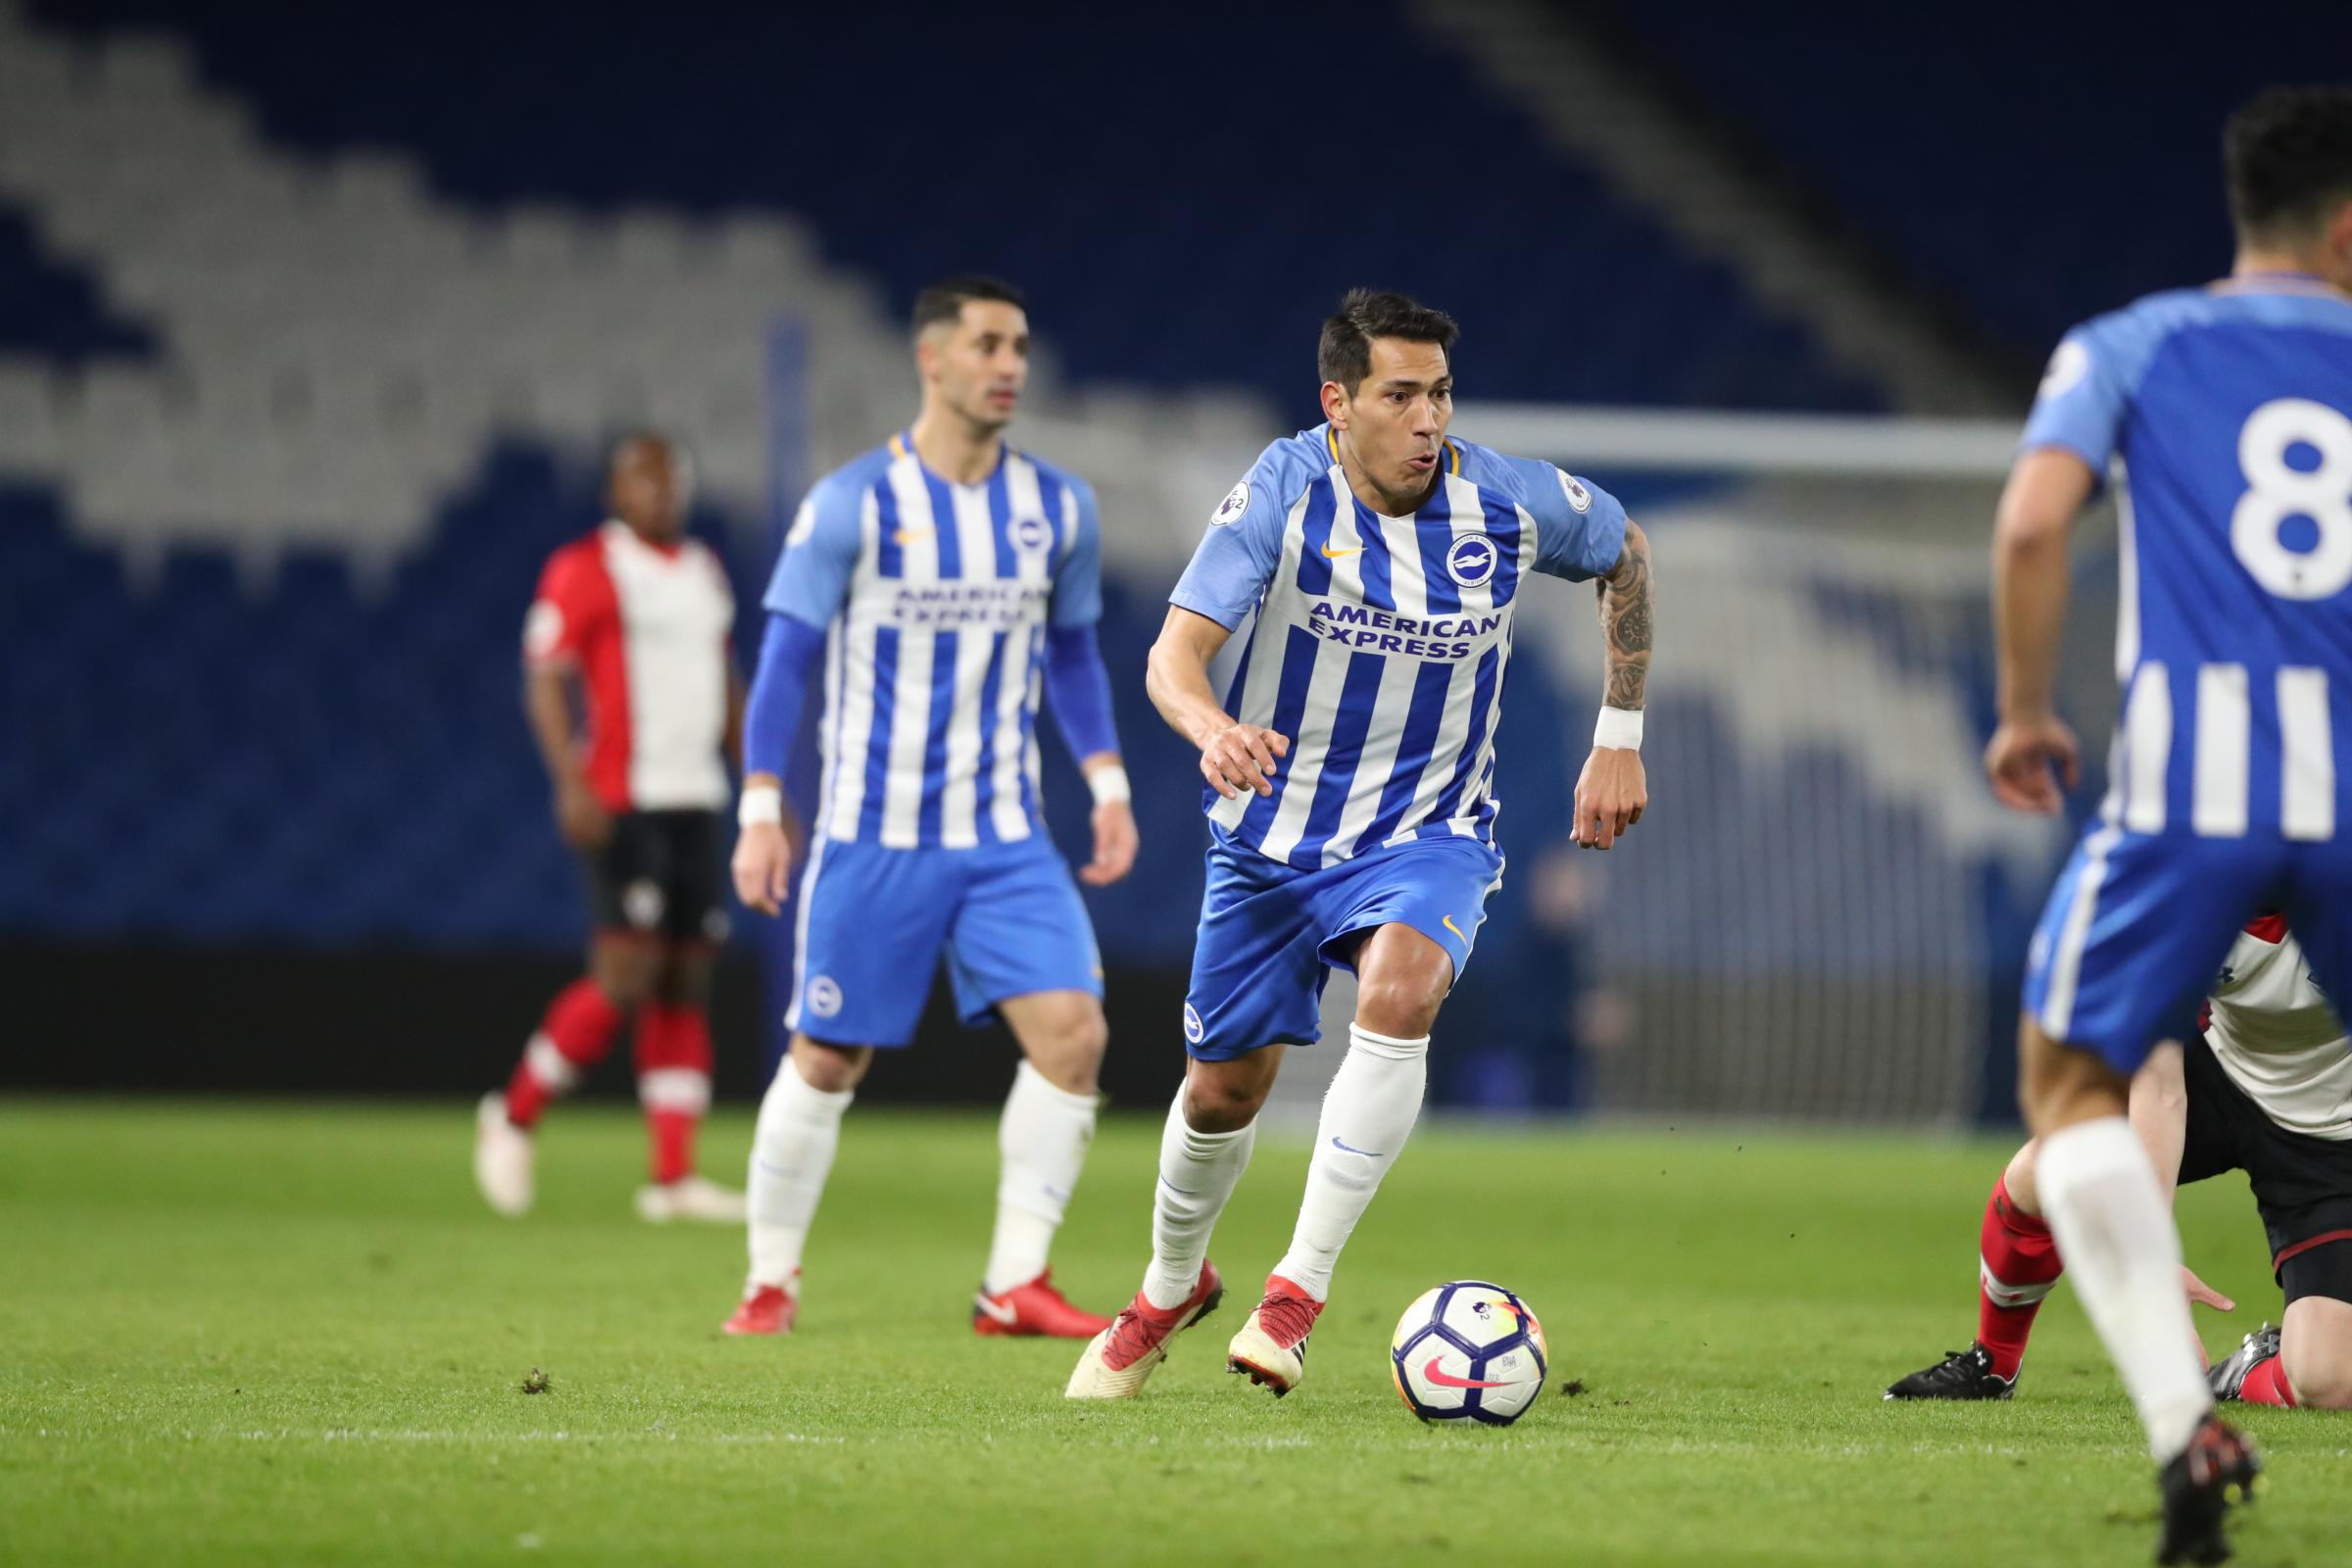 Leo Ulloa in action at the Amex tonight. Picture Paul Hazlewood